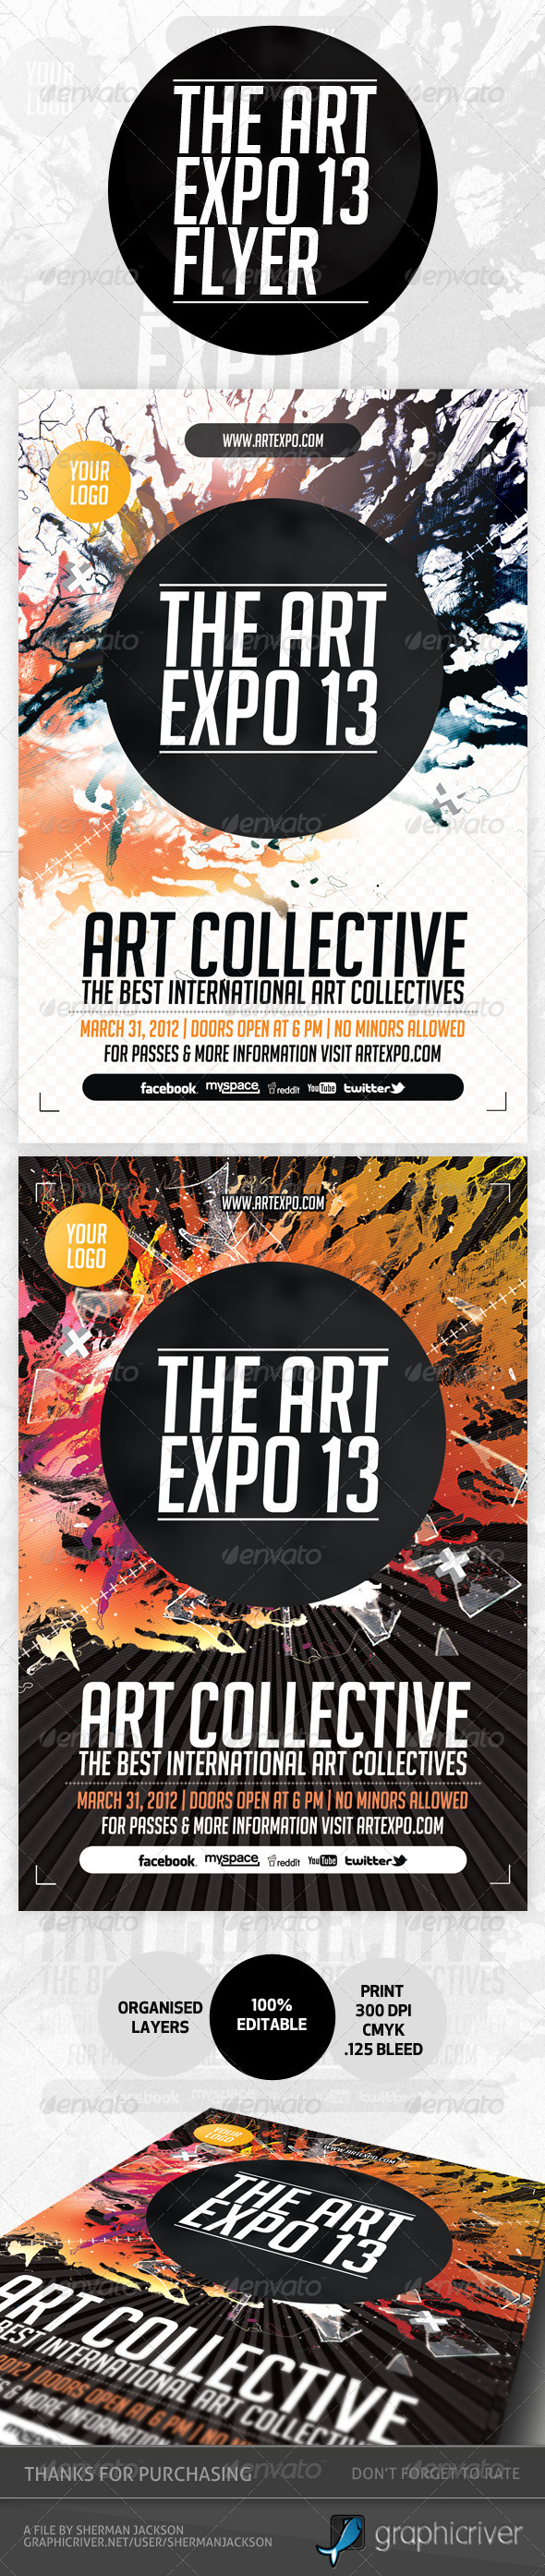 Art Expo & Art Show Event Flyer Template PSD - Miscellaneous Events